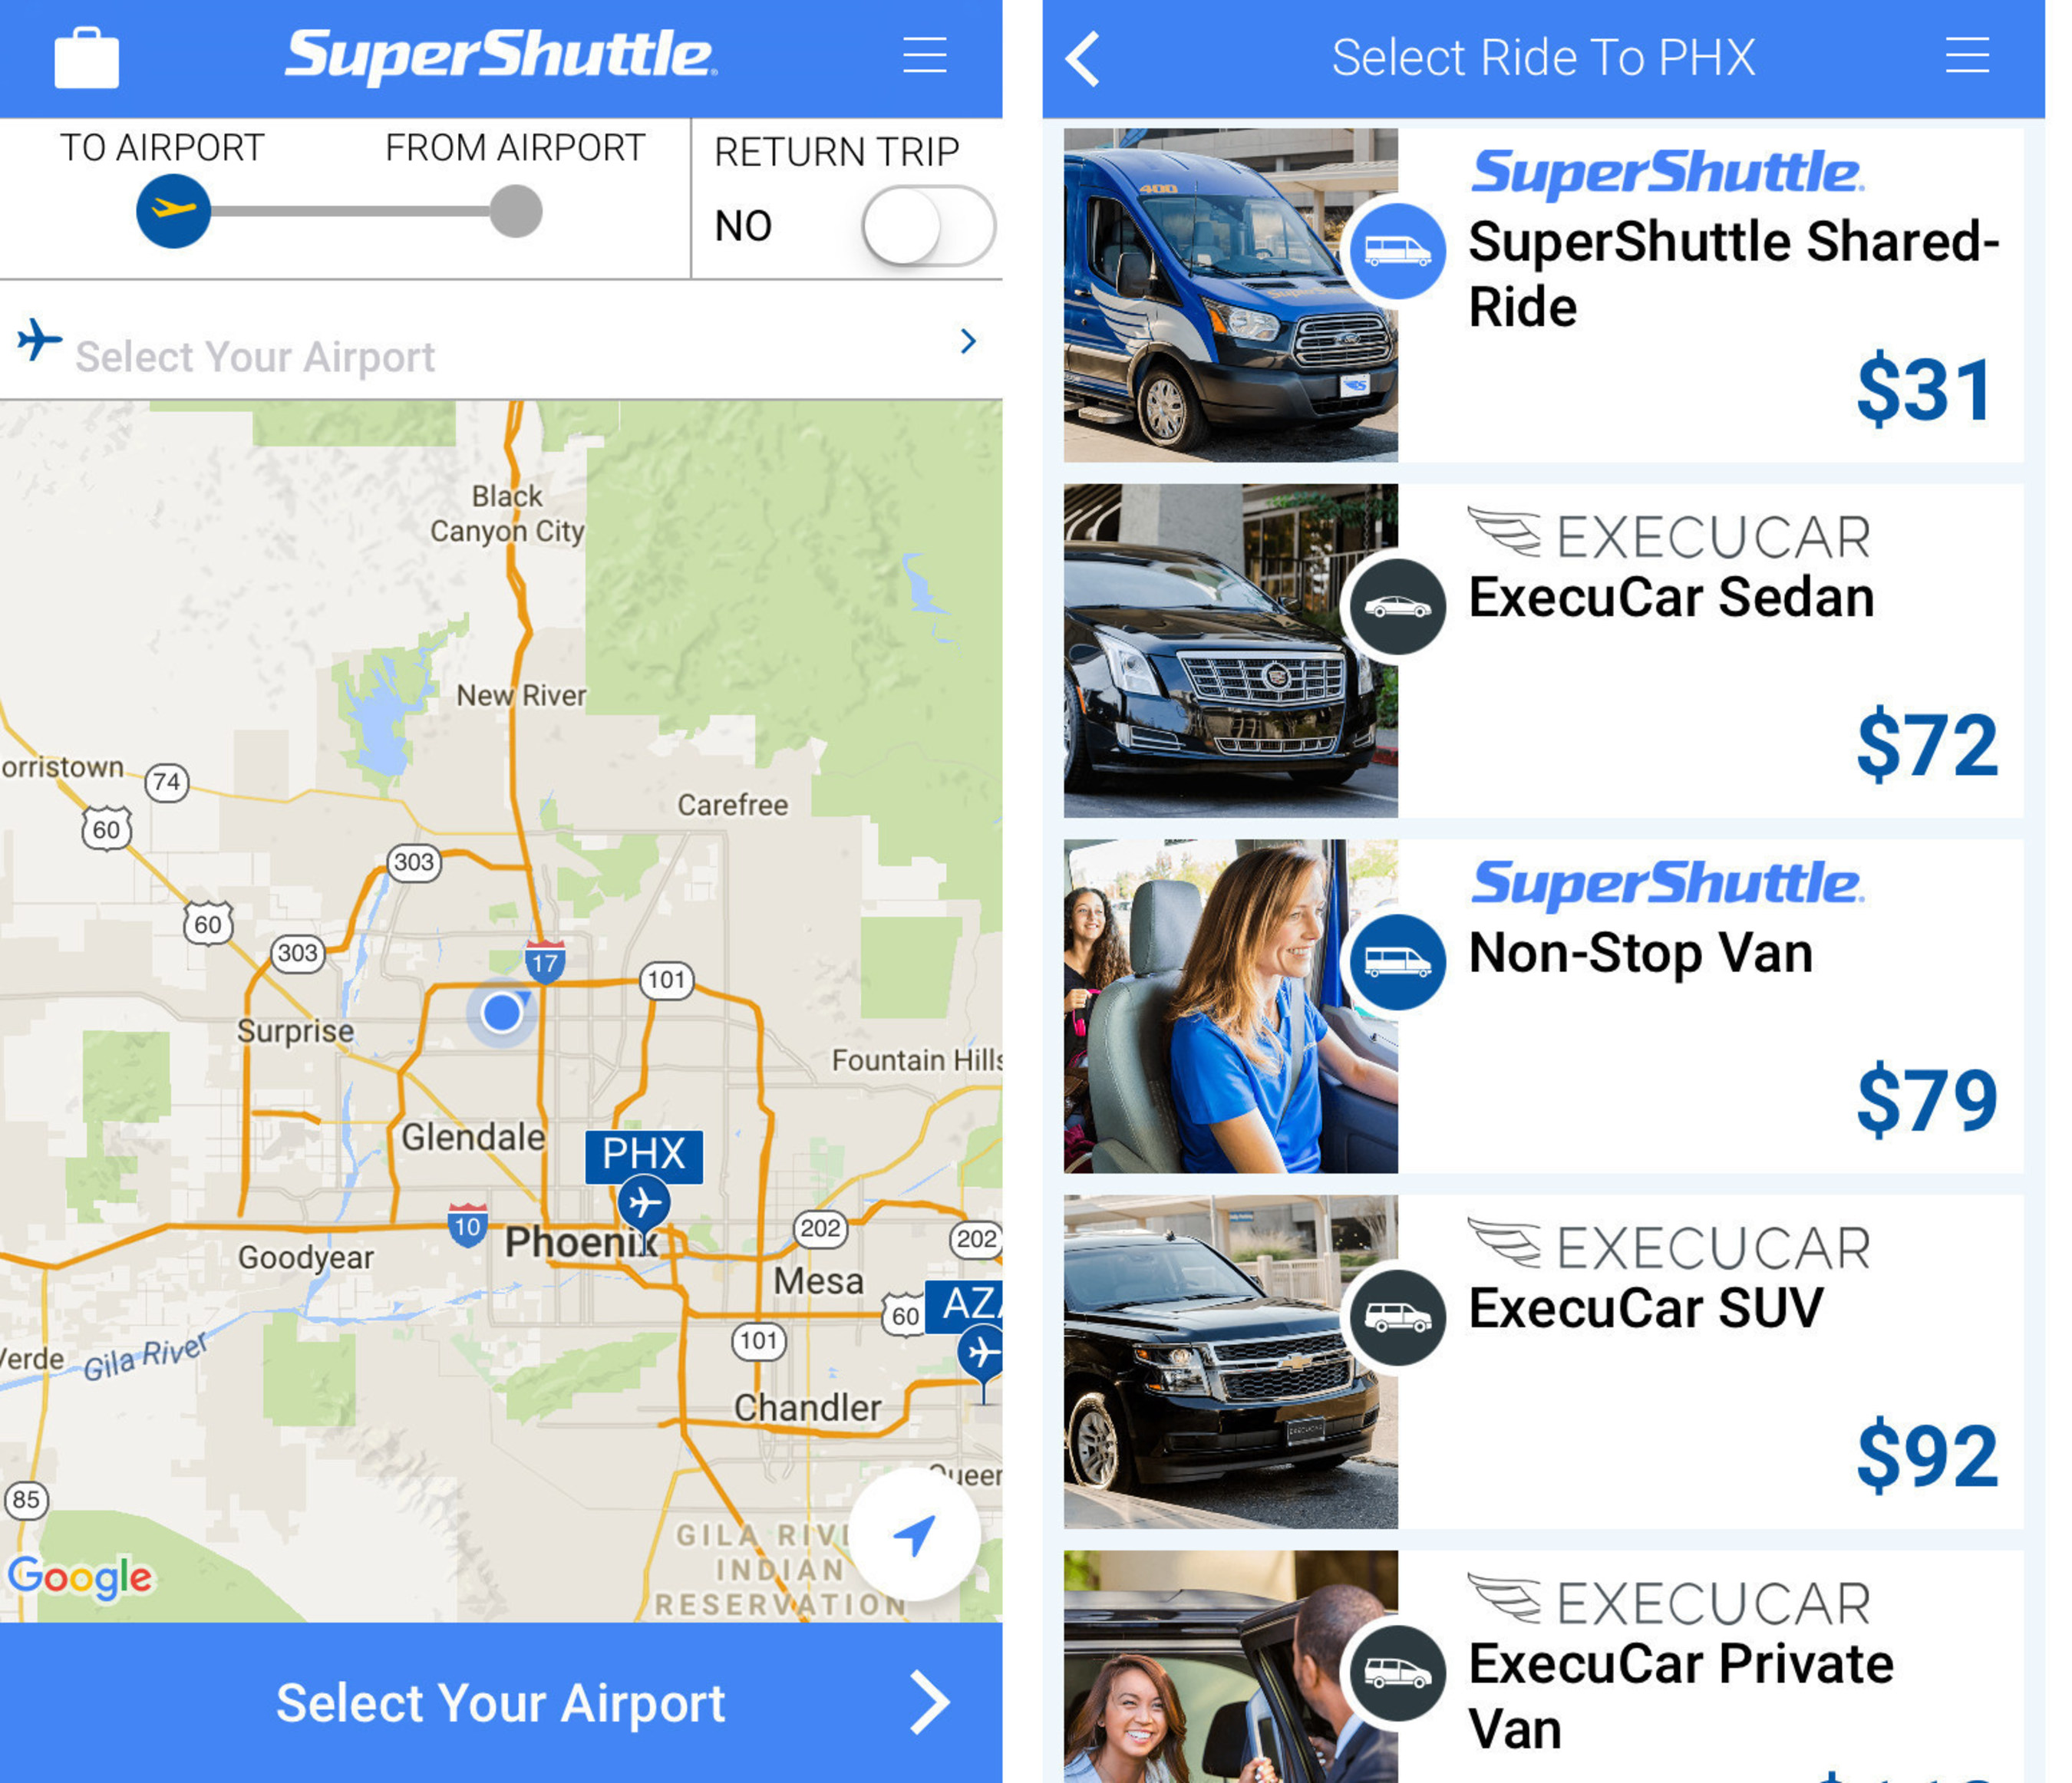 Miles And More Points Supershuttle Launches Summer Vacation Sale 10 Off Plus Double